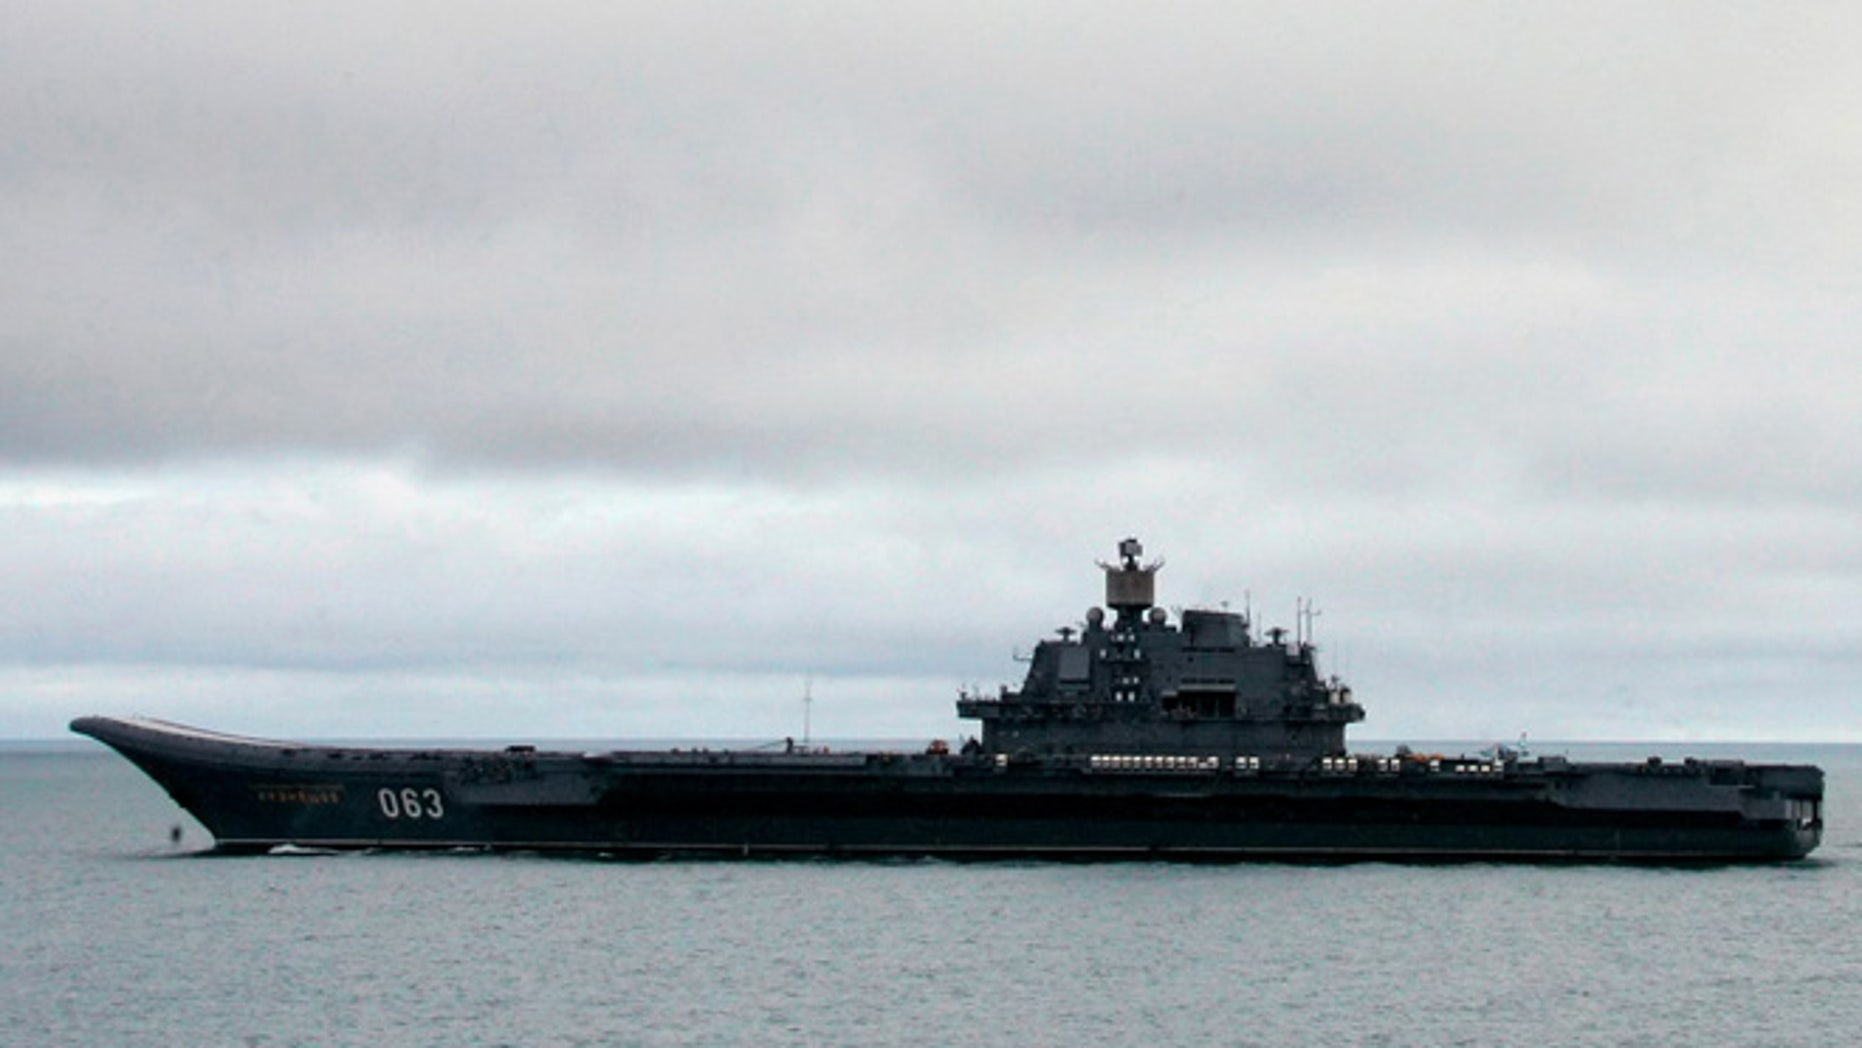 FILE: The Russian aircraft carrier Admiral Kuznetsov, seen here in the Barents Sea, is Moscow's largest and is being sent to the Mediterranean after military buildup by the US.